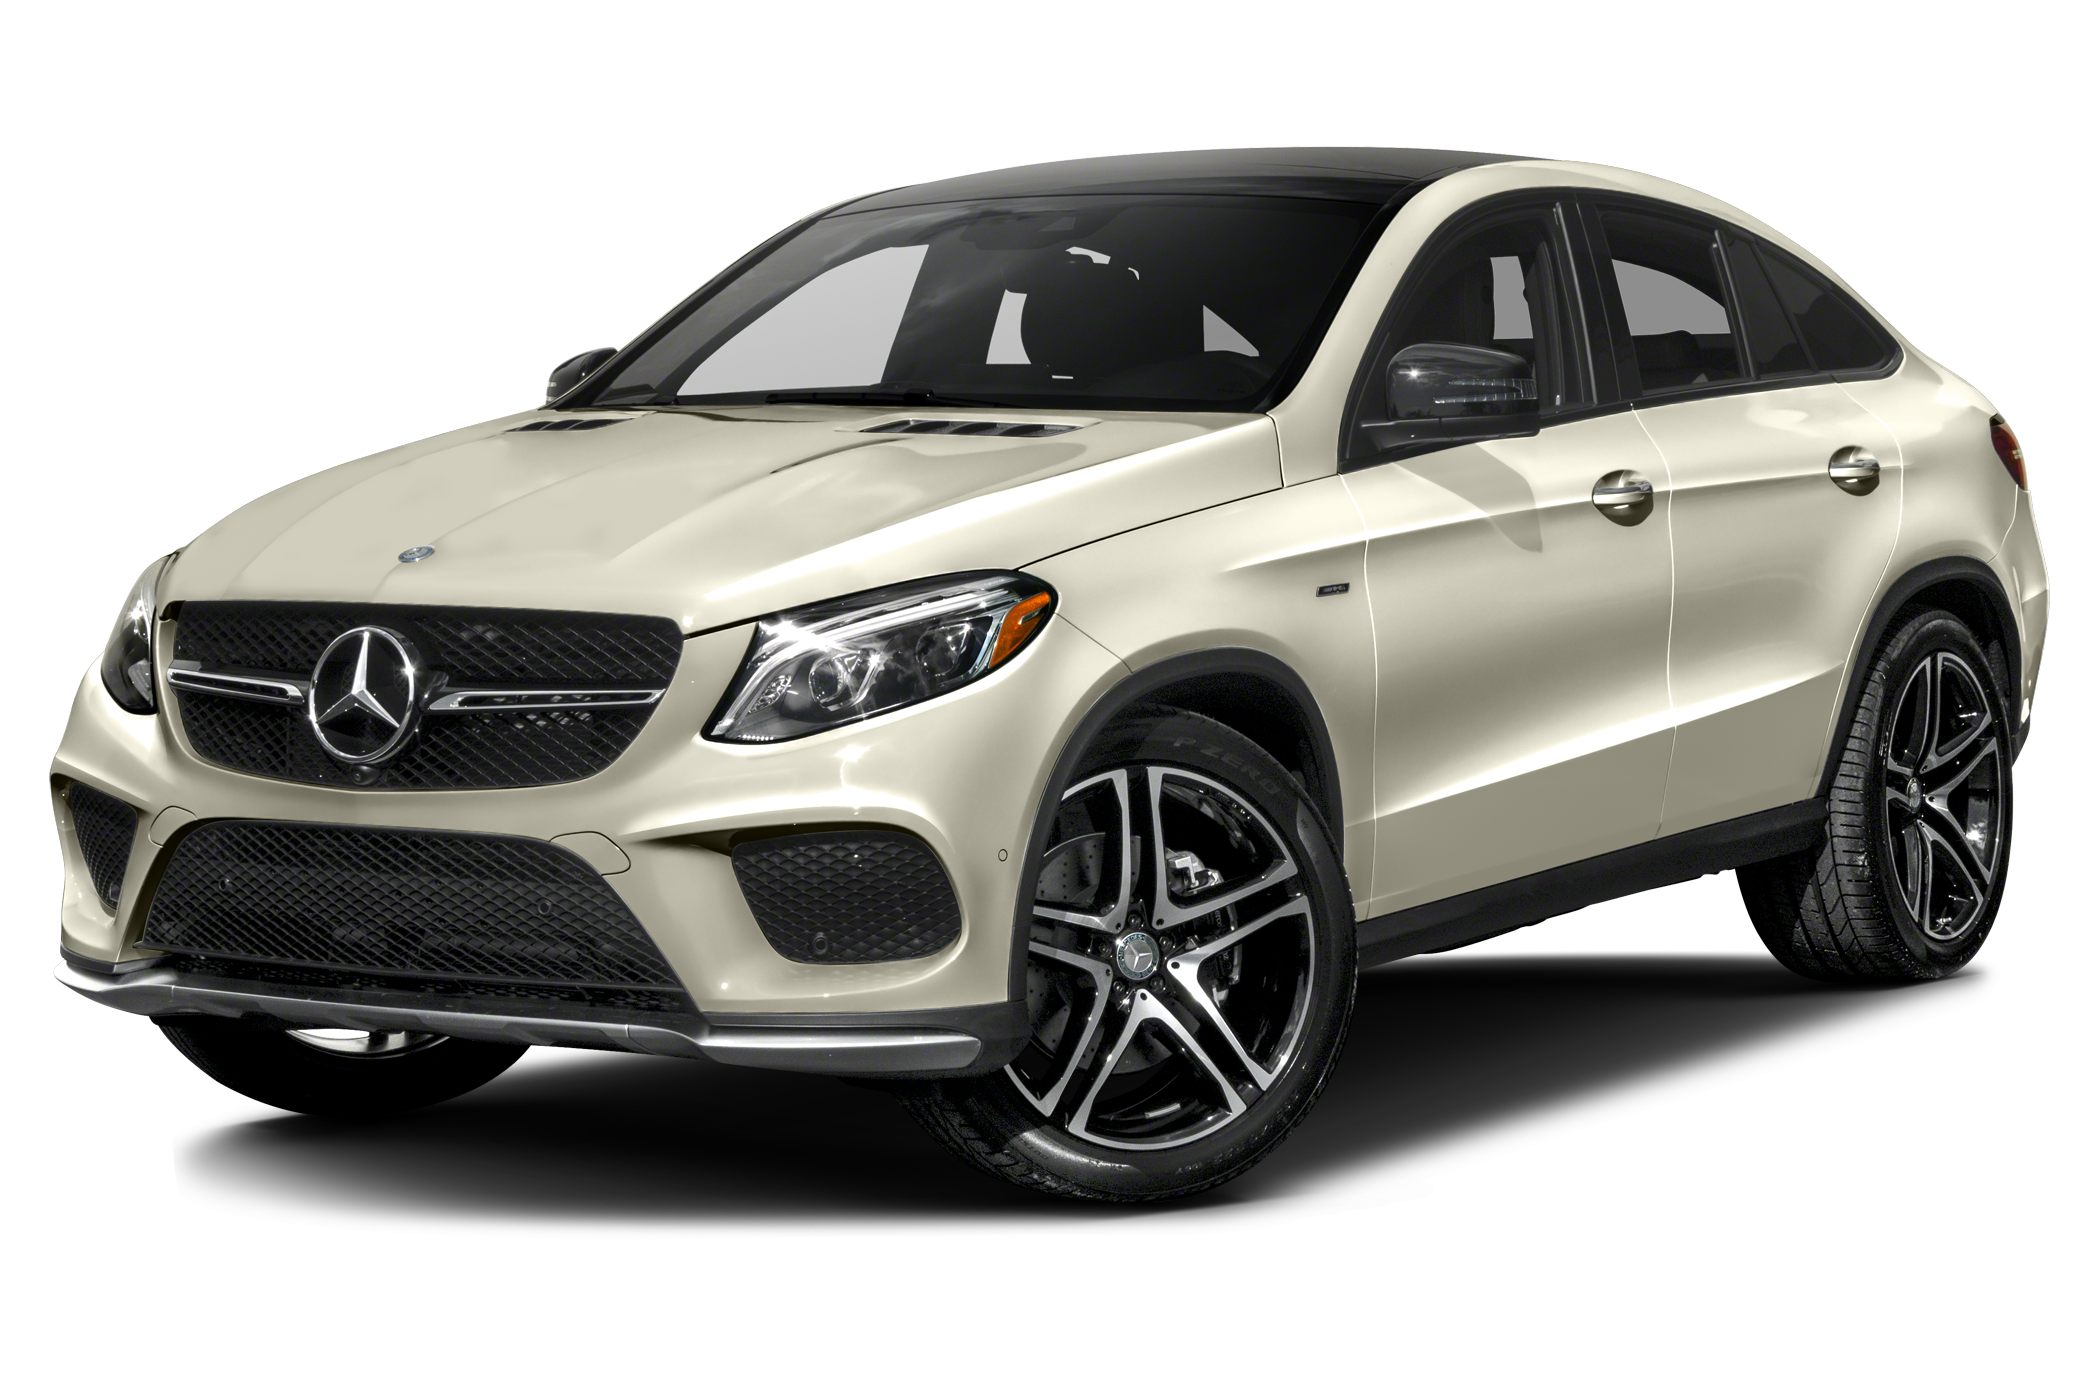 2019 mercedes benz gle class spy shots photo gallery for Mercedes benz gle 2019